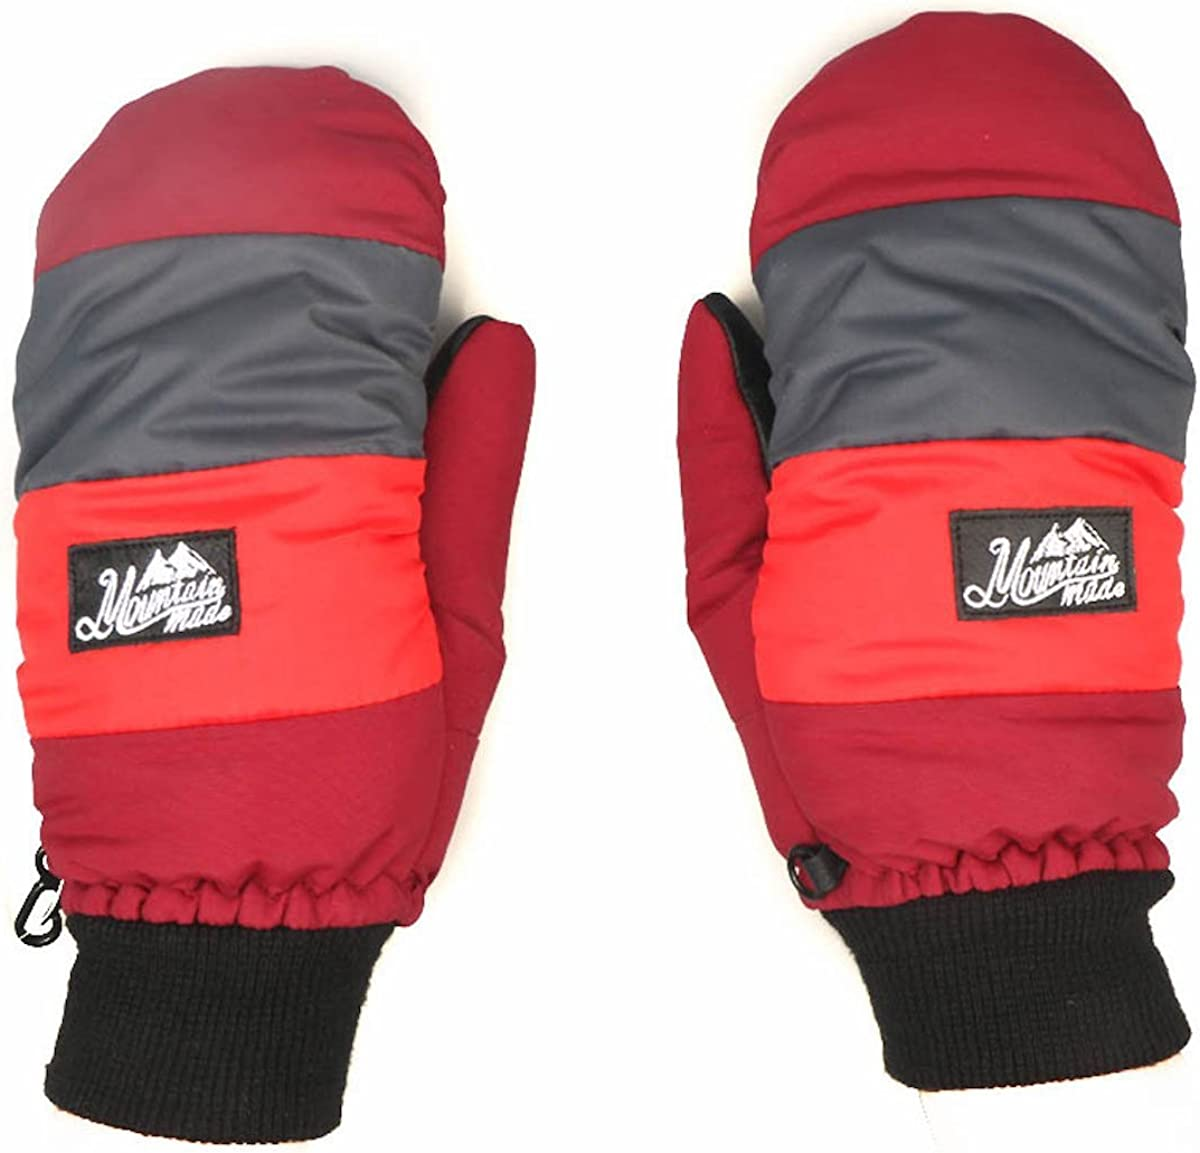 Mountain Made Cold Weather Winter Mittens For Men and Women Medium, Red